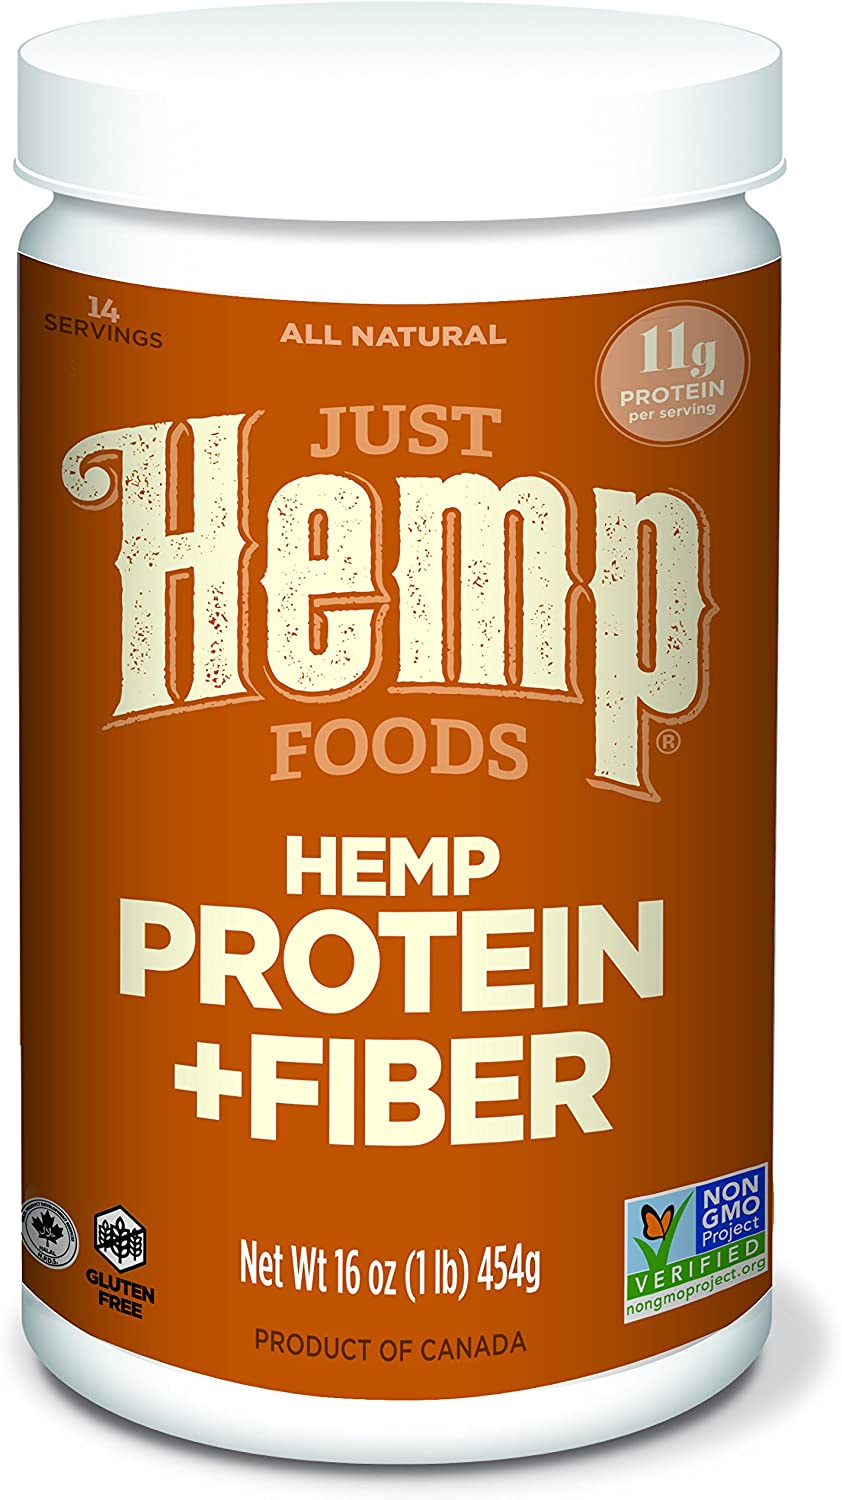 Just Hemp Foods Hemp Protein Powder Plus Fiber, Non-GMO Verified with 11g of Protein & 11g of Fiber per Serving, 16 oz - Packaging May Vary: Health & Personal Care